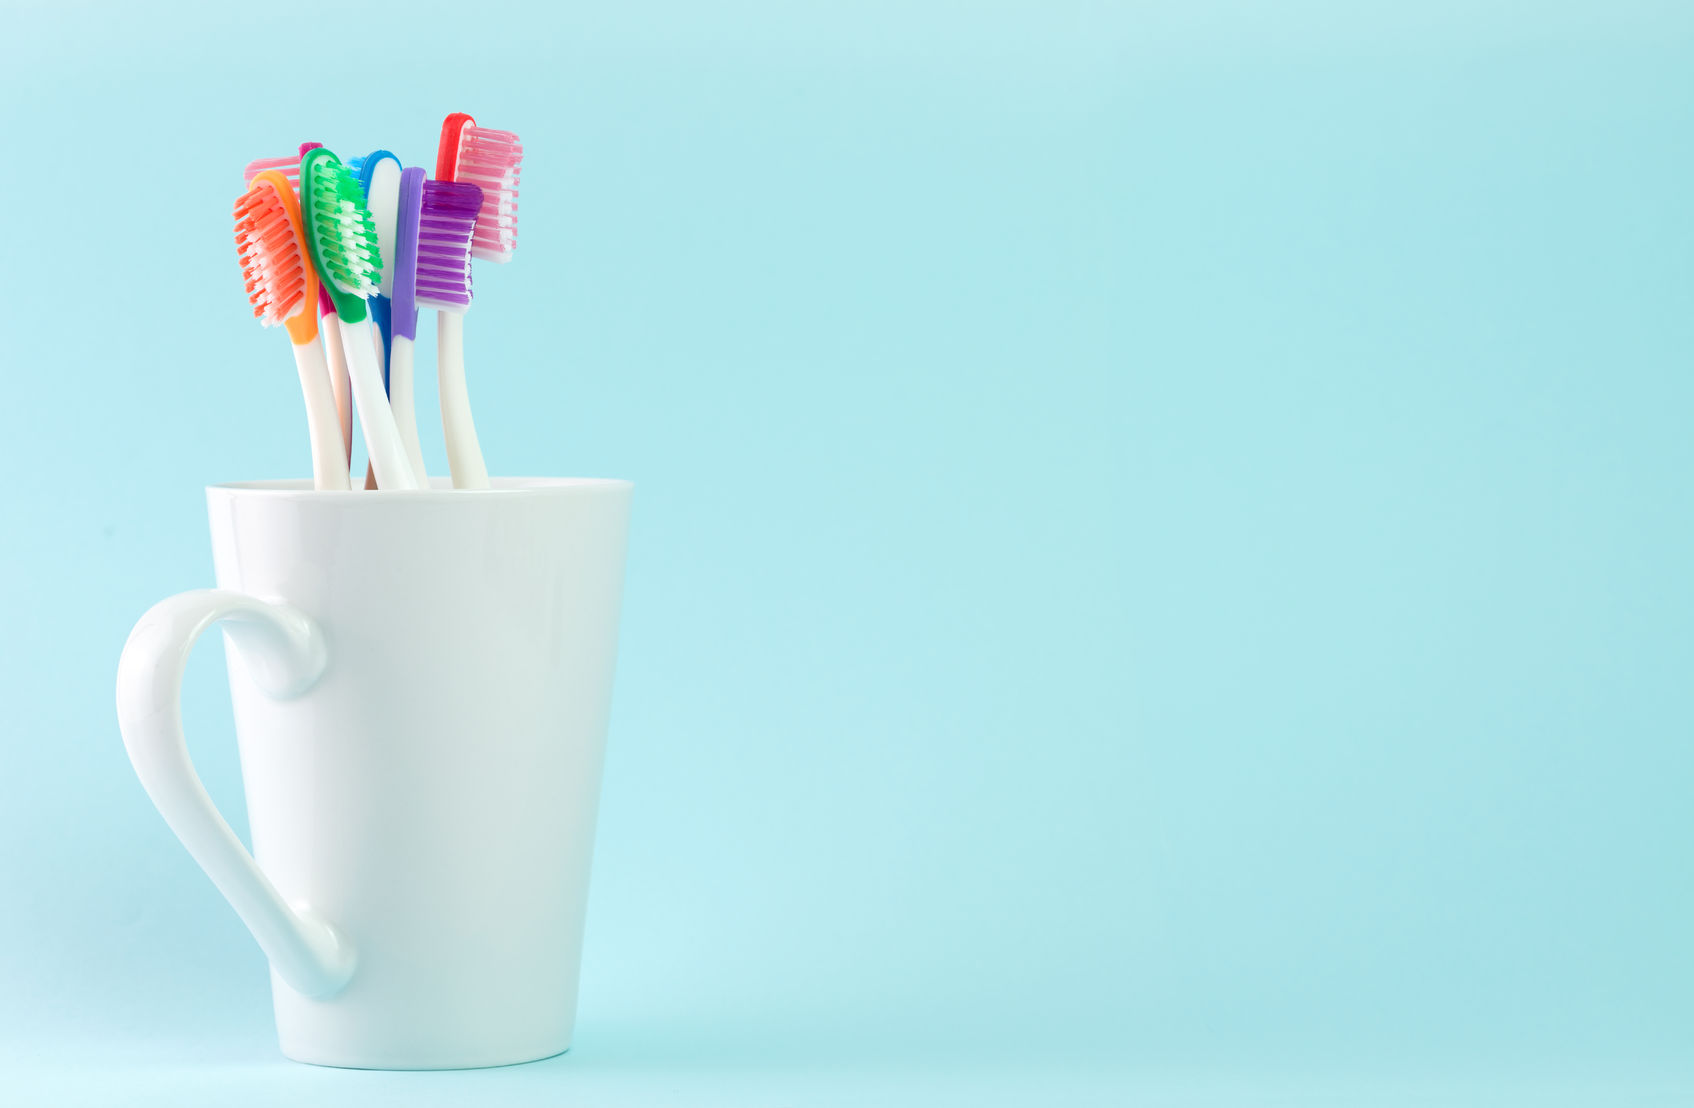 46444107 - multicolor toothbrushes in white mug, with copyspace